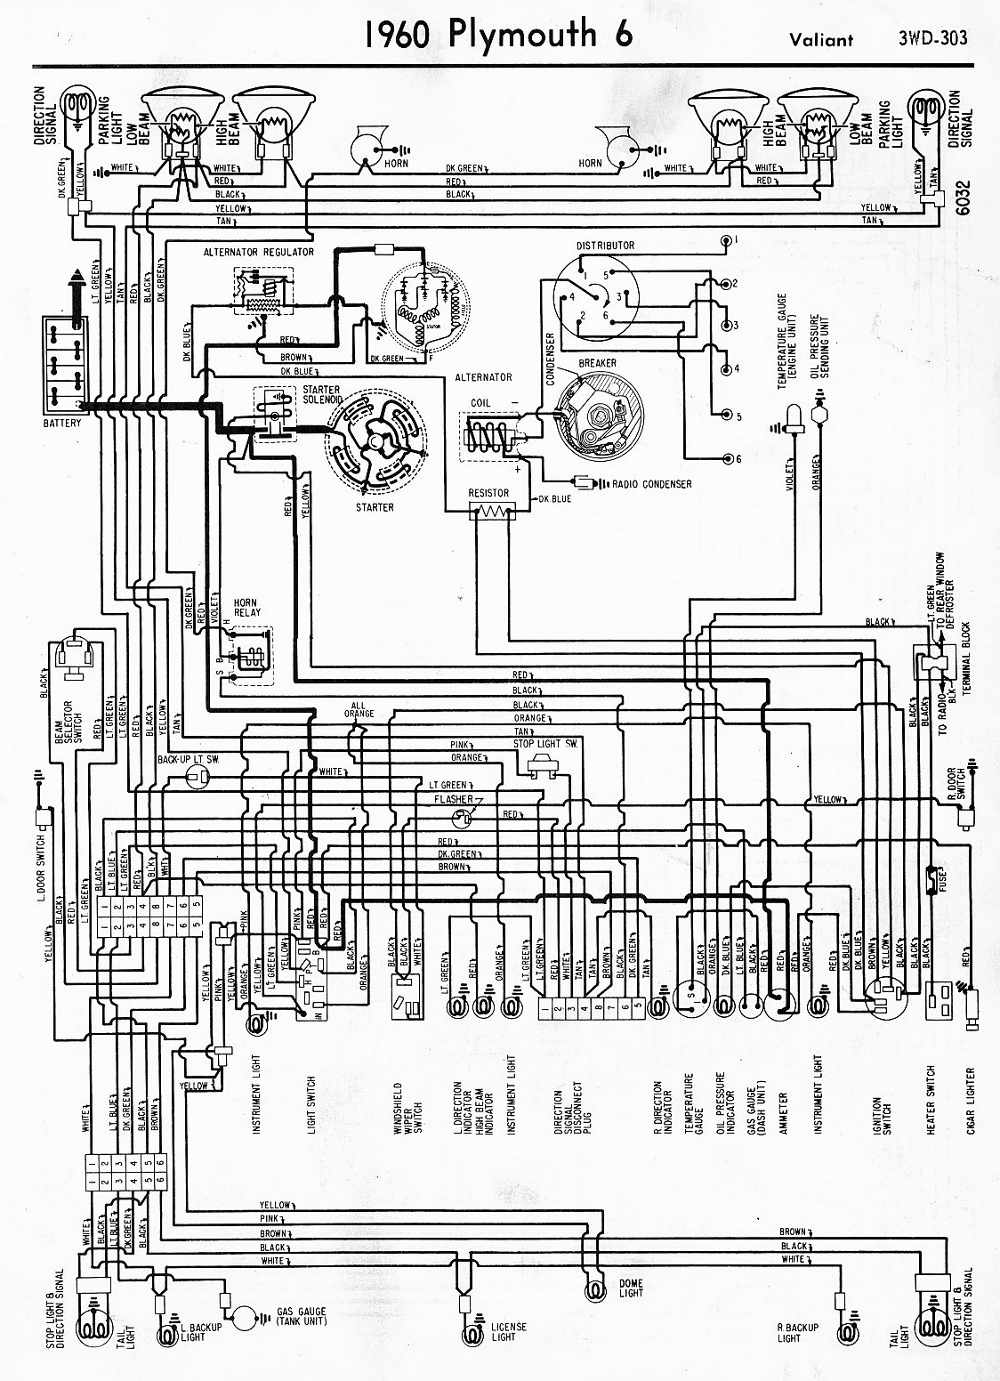 1960 Impala Wiring Diagram With Alternator 1974 Plymouth Scamp Data Duster Ignition Library 1965